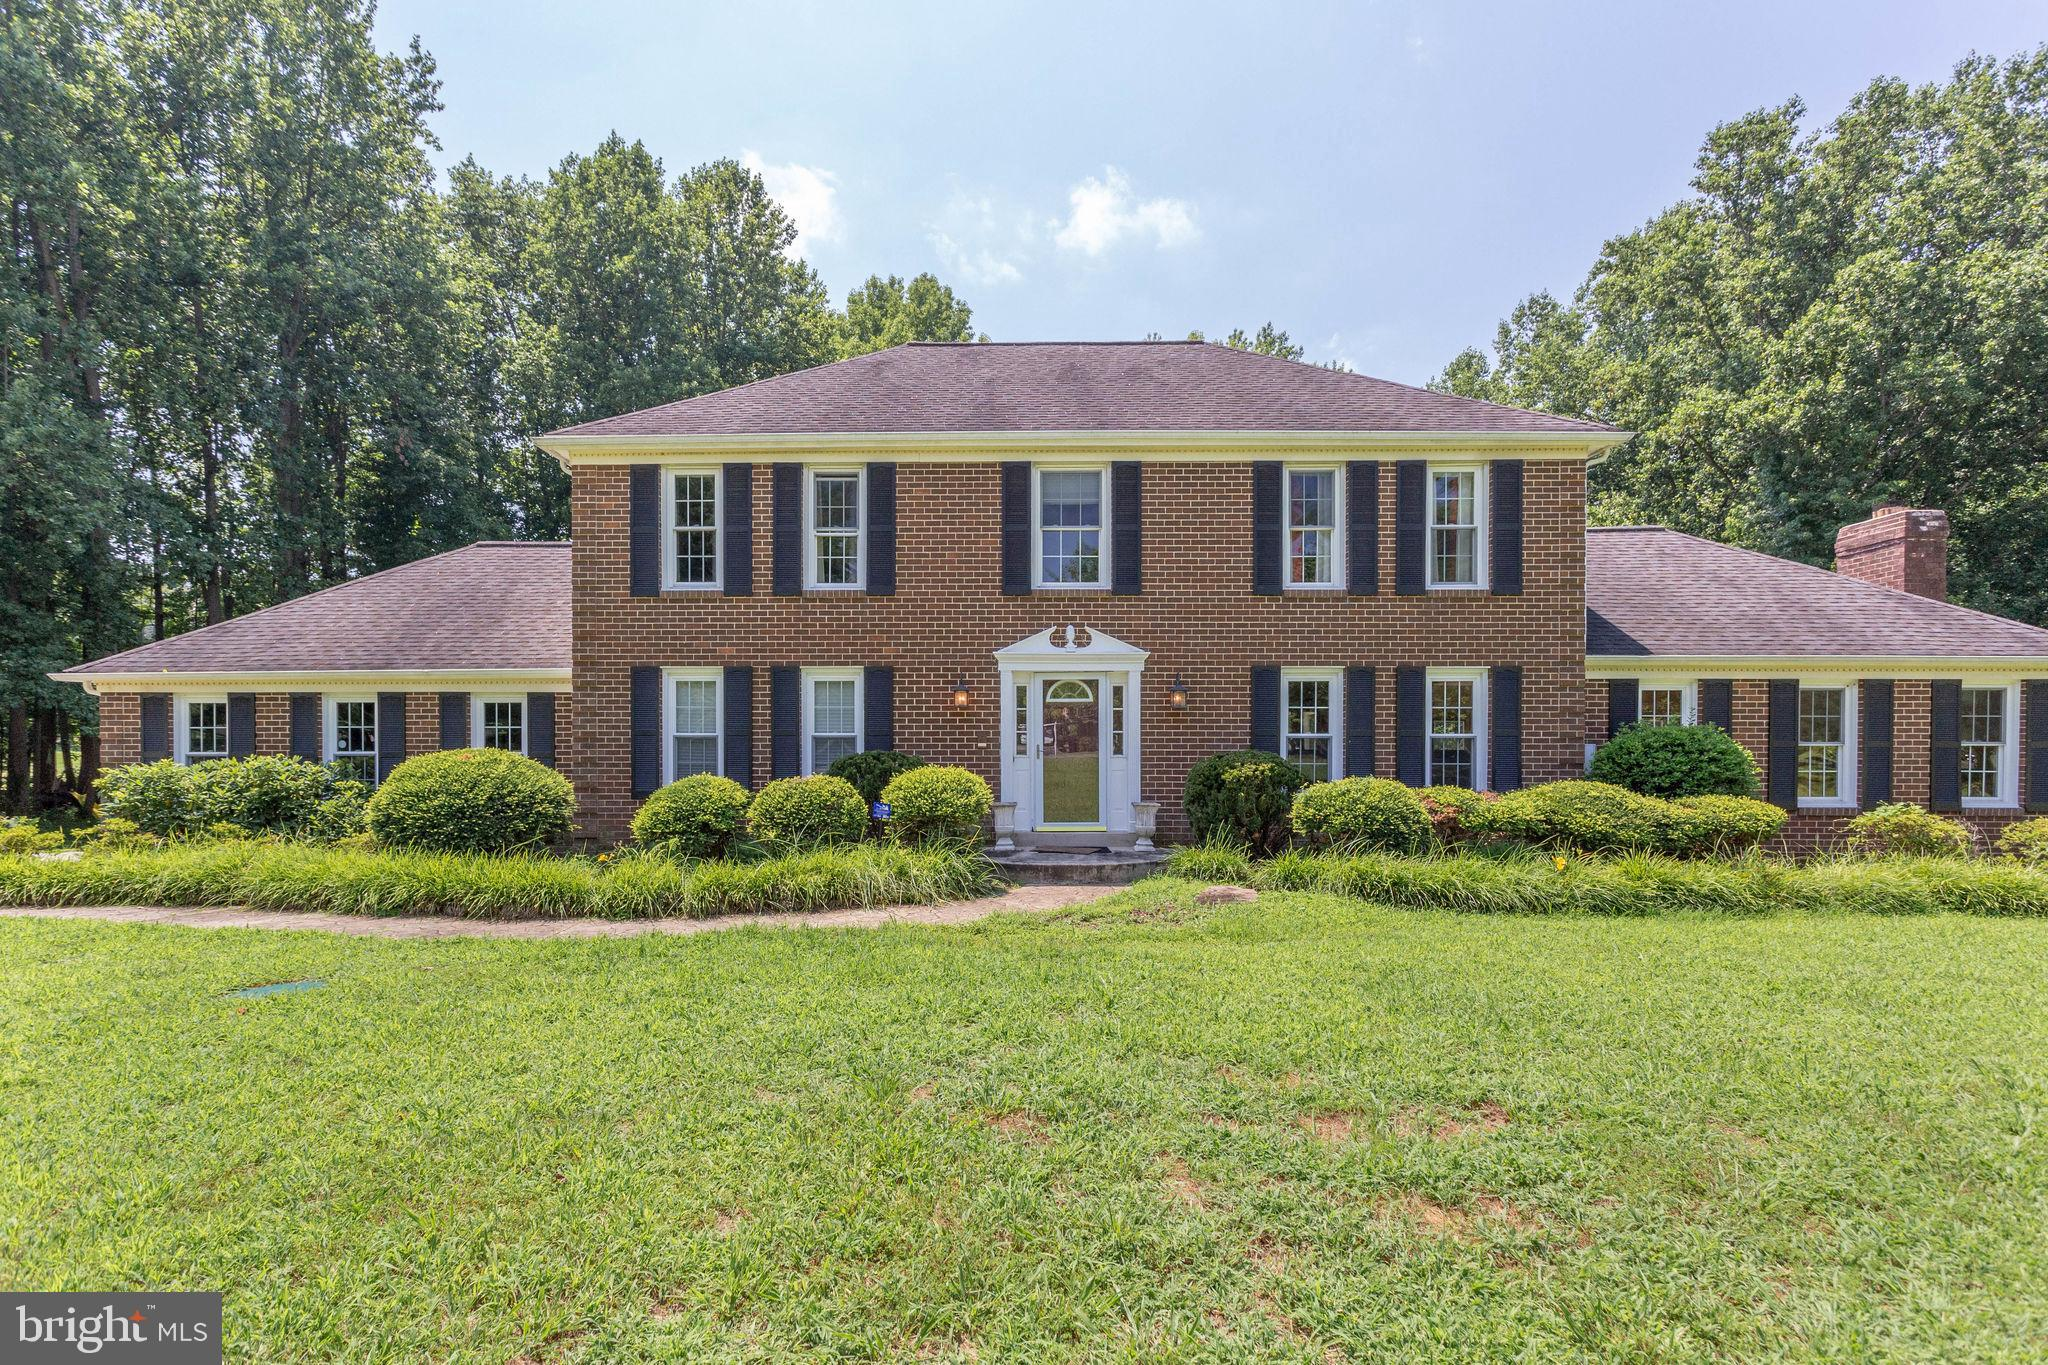 1118 Quince Apple Pl, Davidsonville, MD, 21035